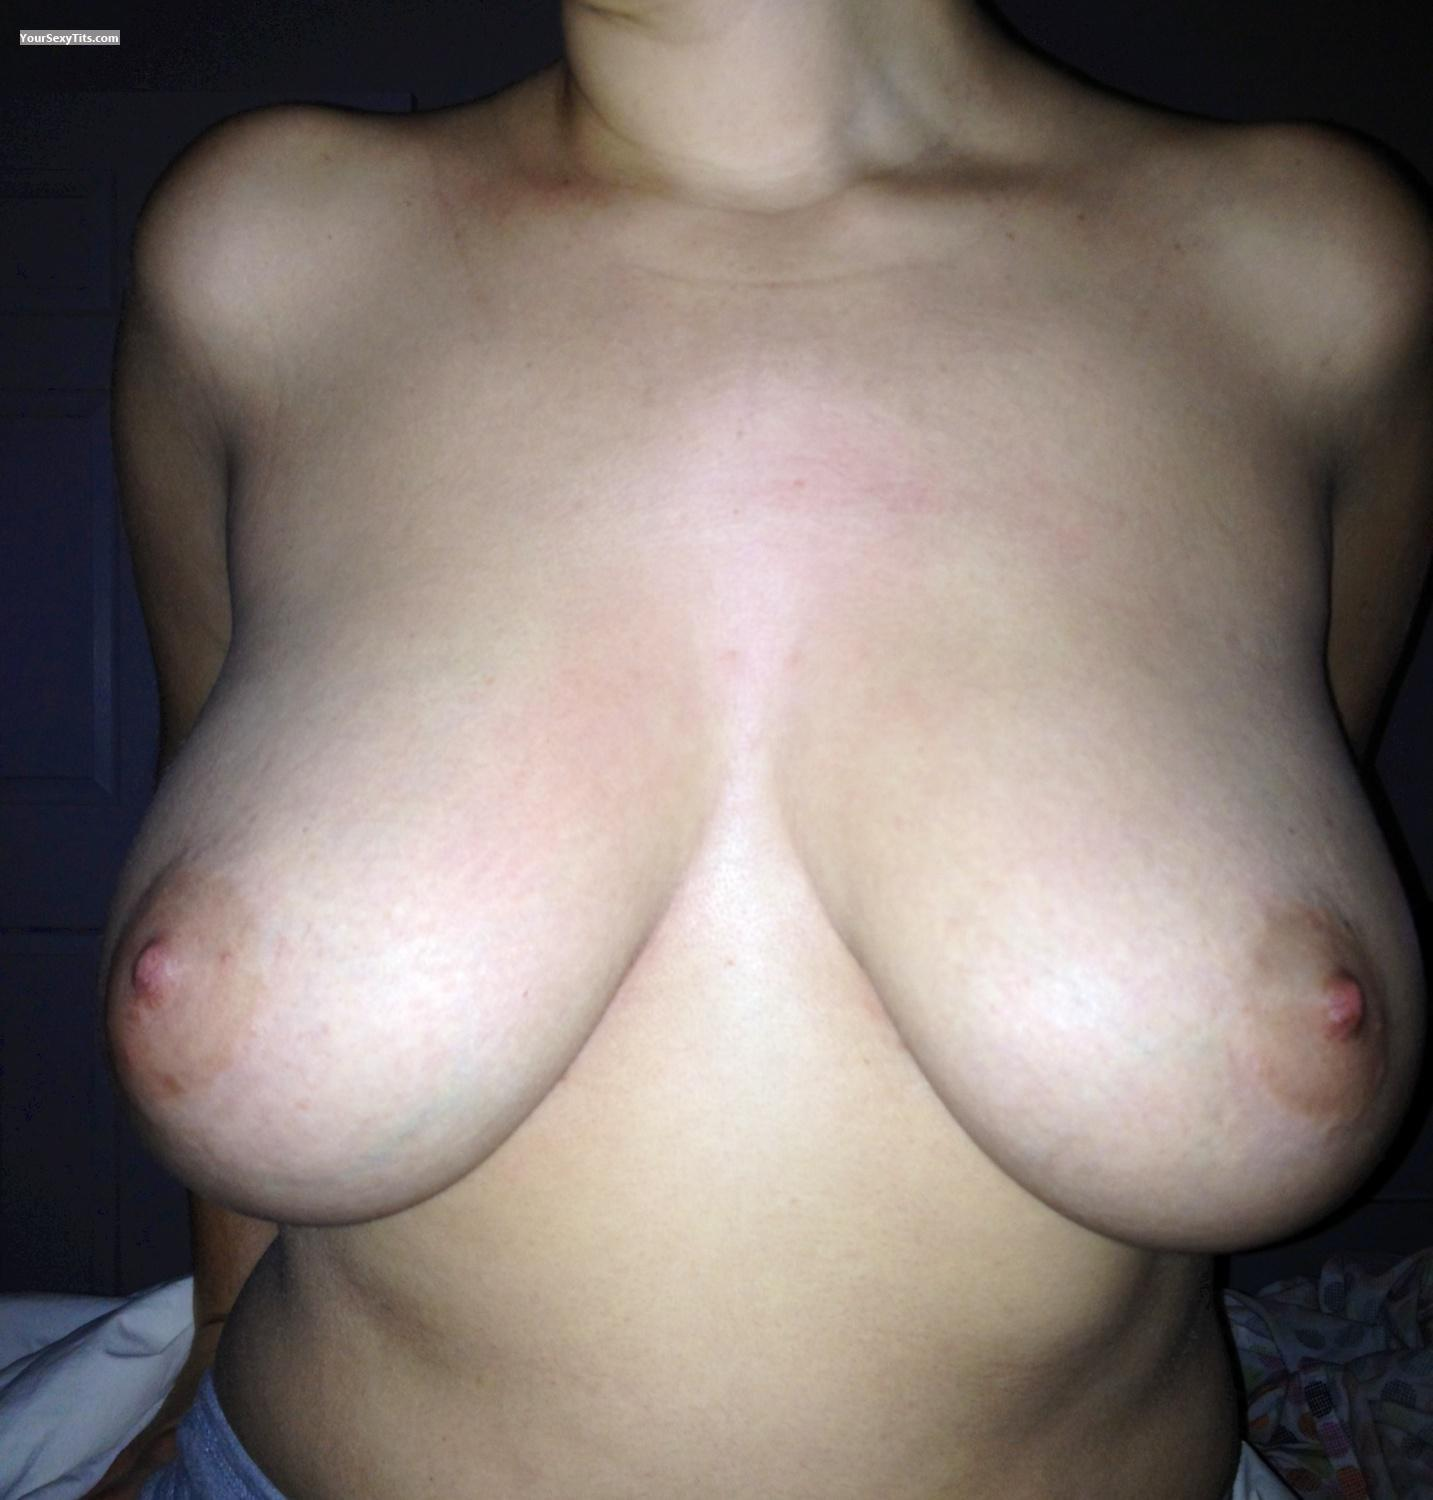 Tit Flash: Big Tits By IPhone - Jut Me from United States